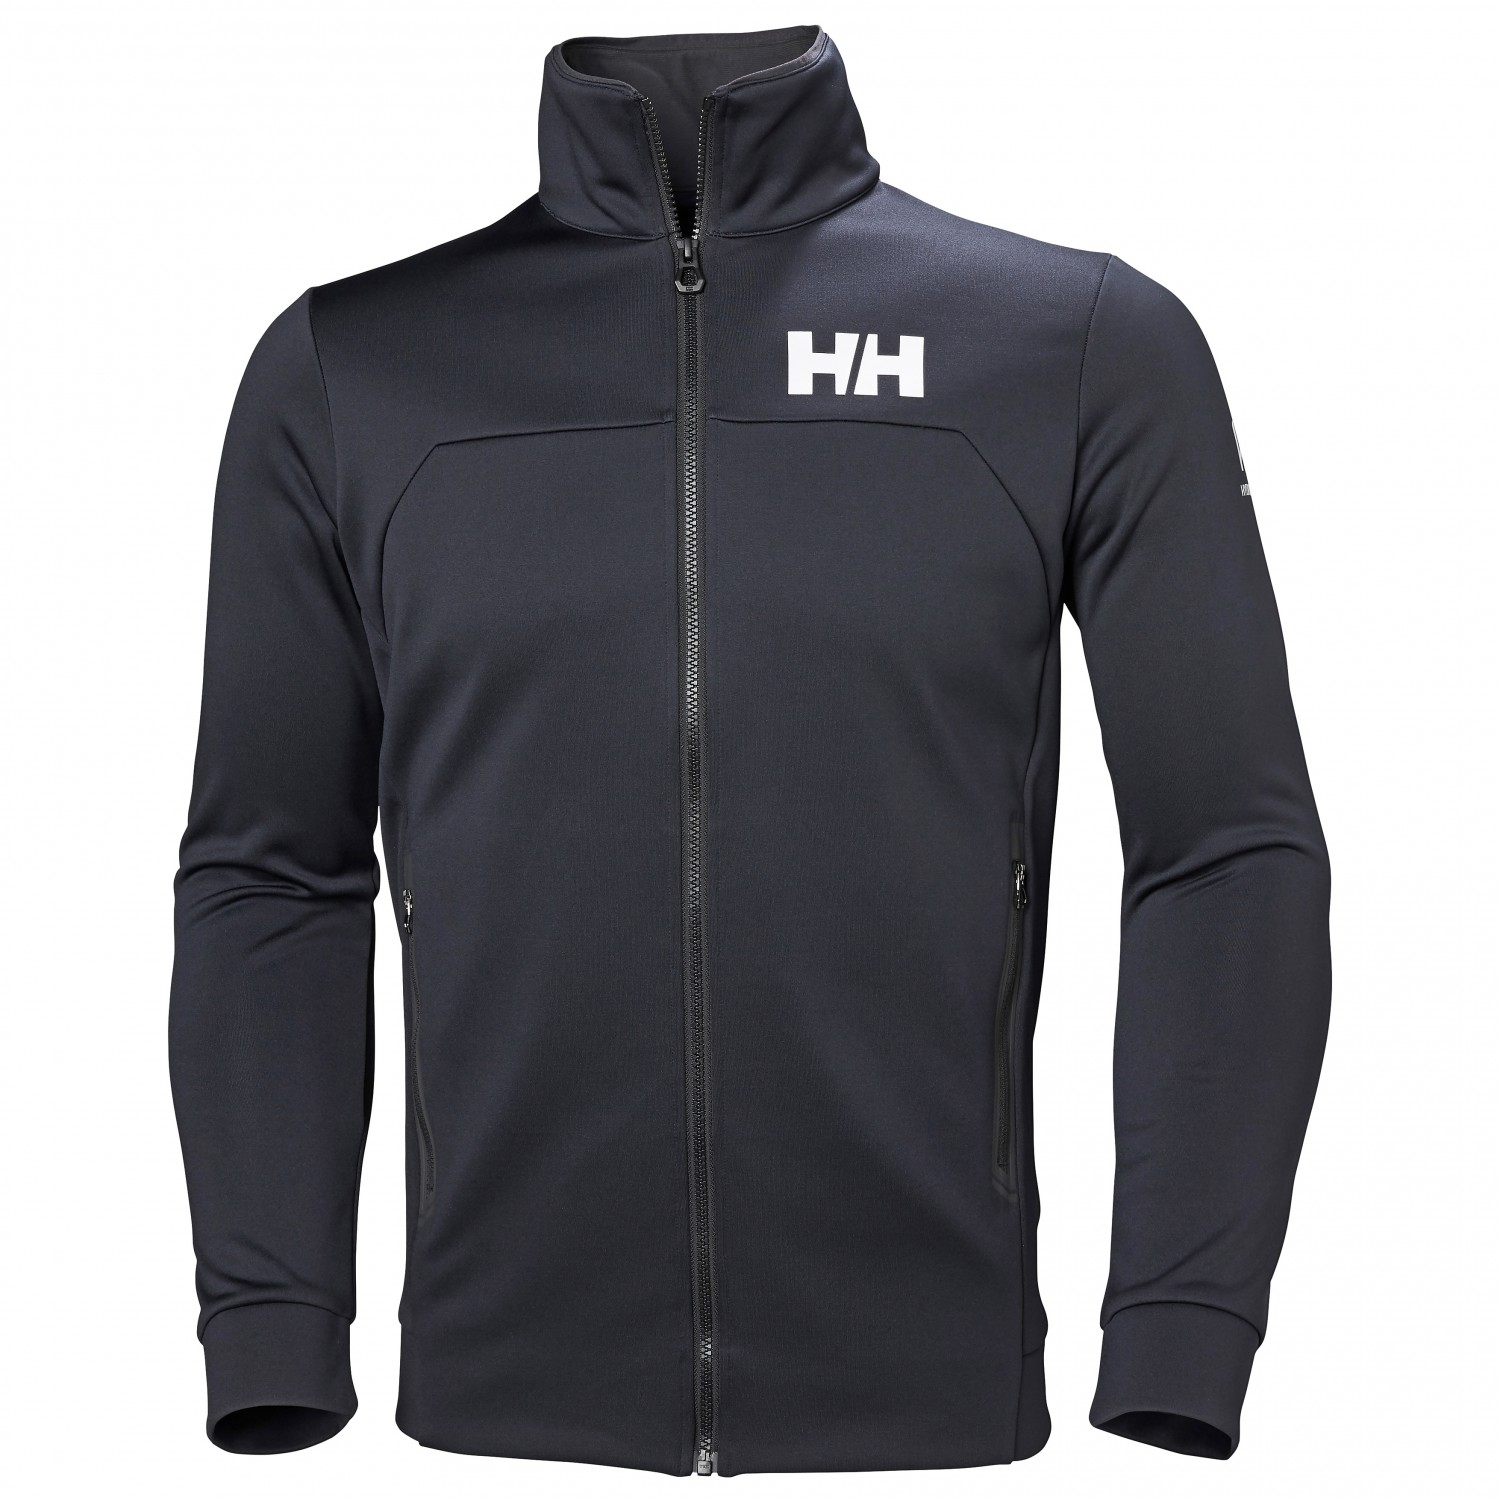 df53243830 Helly Hansen HP Fleece Jacket - Fleece Jacket Men's | Free UK ...